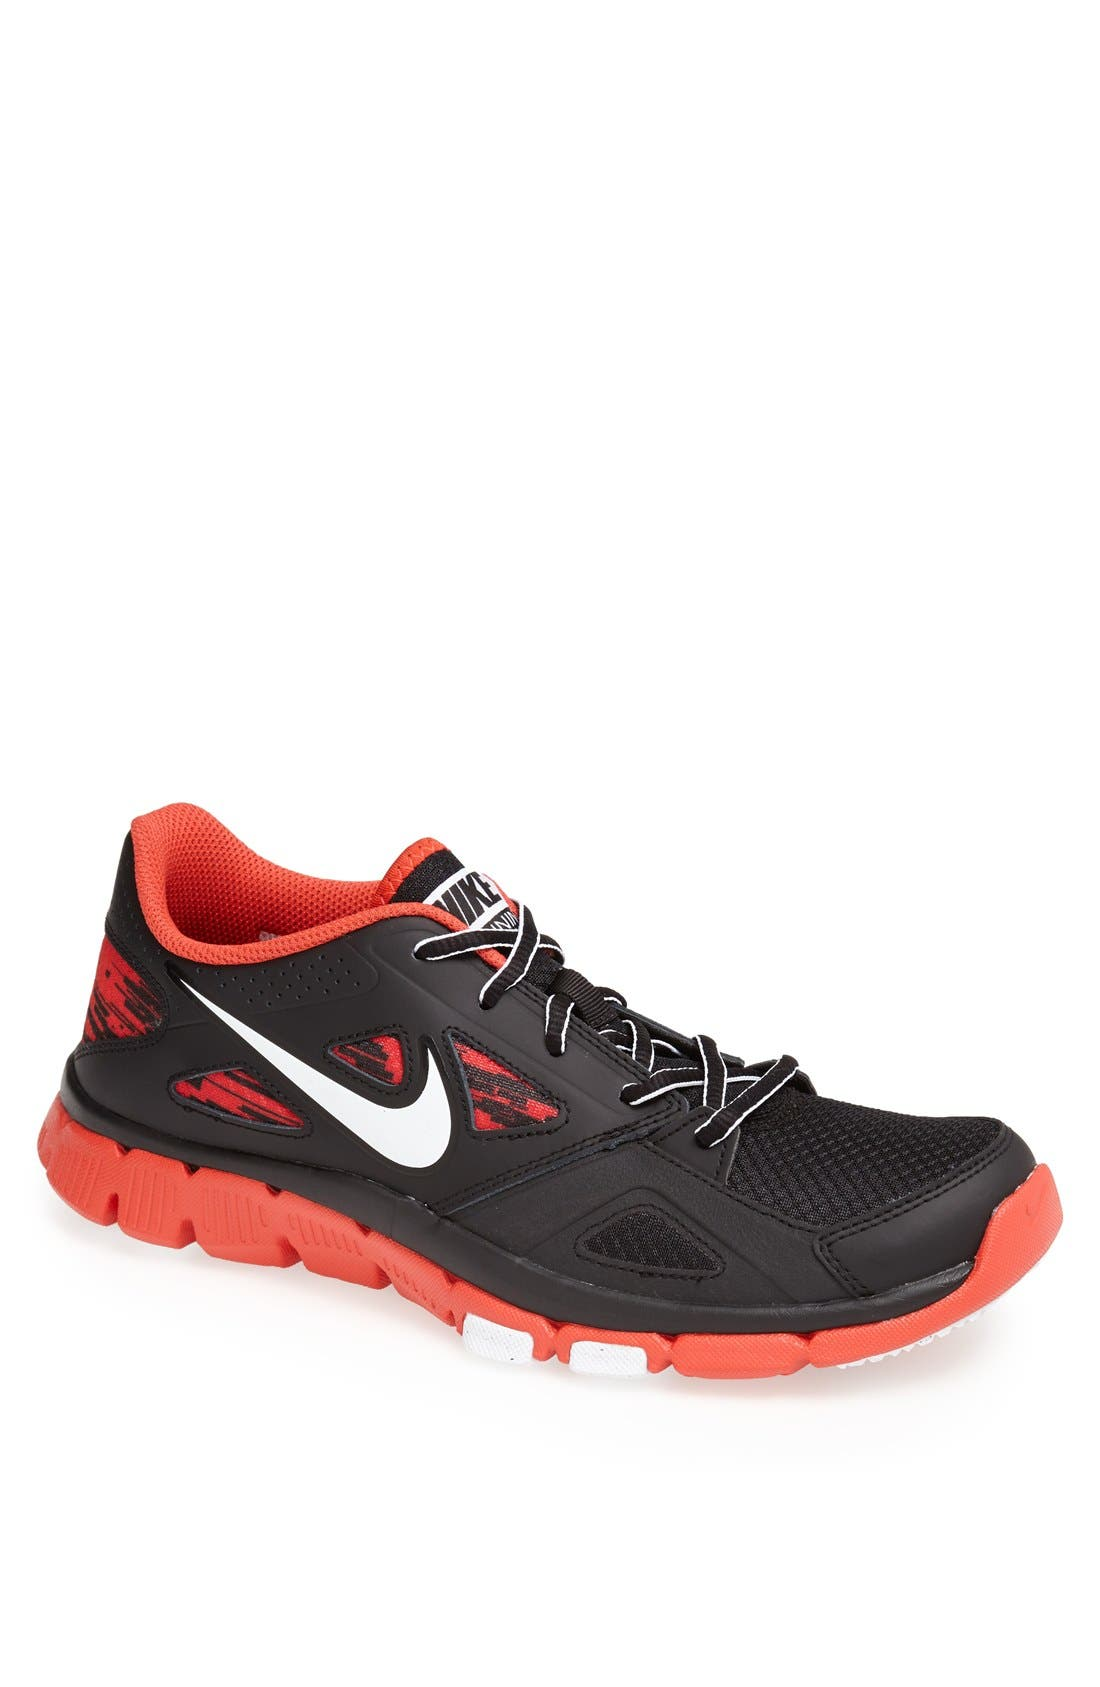 Main Image - Nike 'Flex Supreme TR 2' Training Shoe (Men)